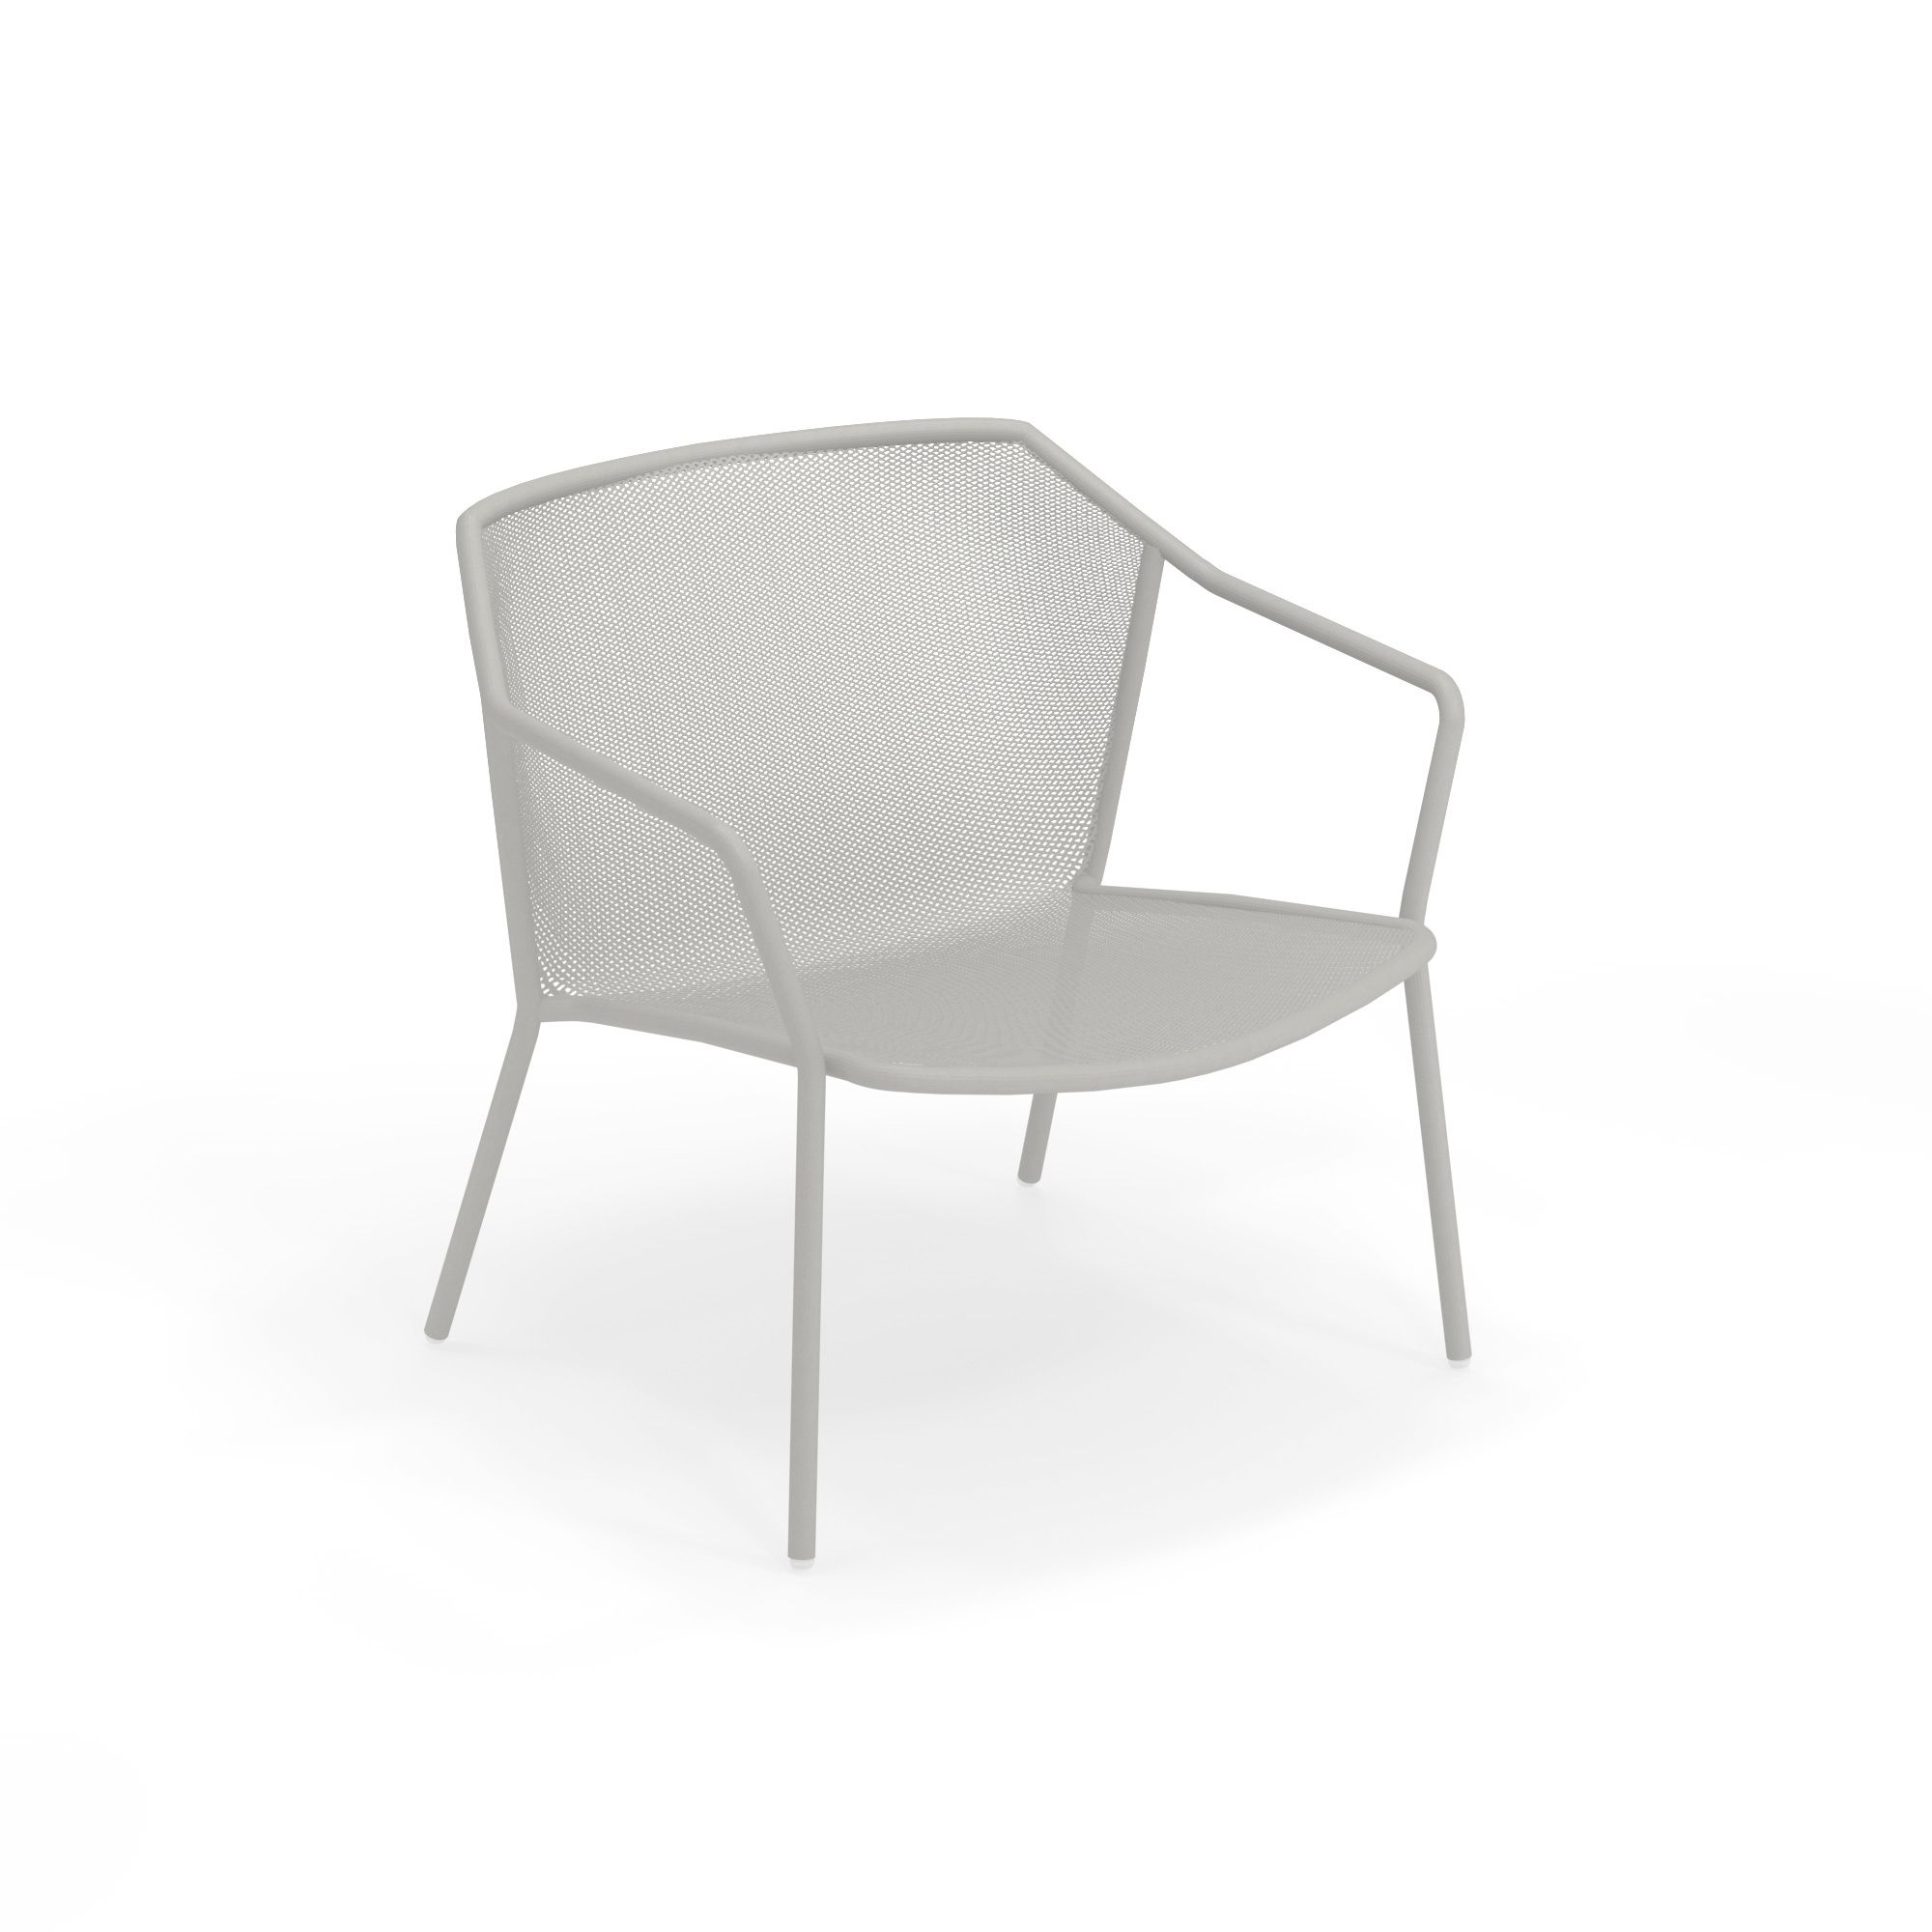 emuamericas, llc 524-73 chair, lounge, outdoor